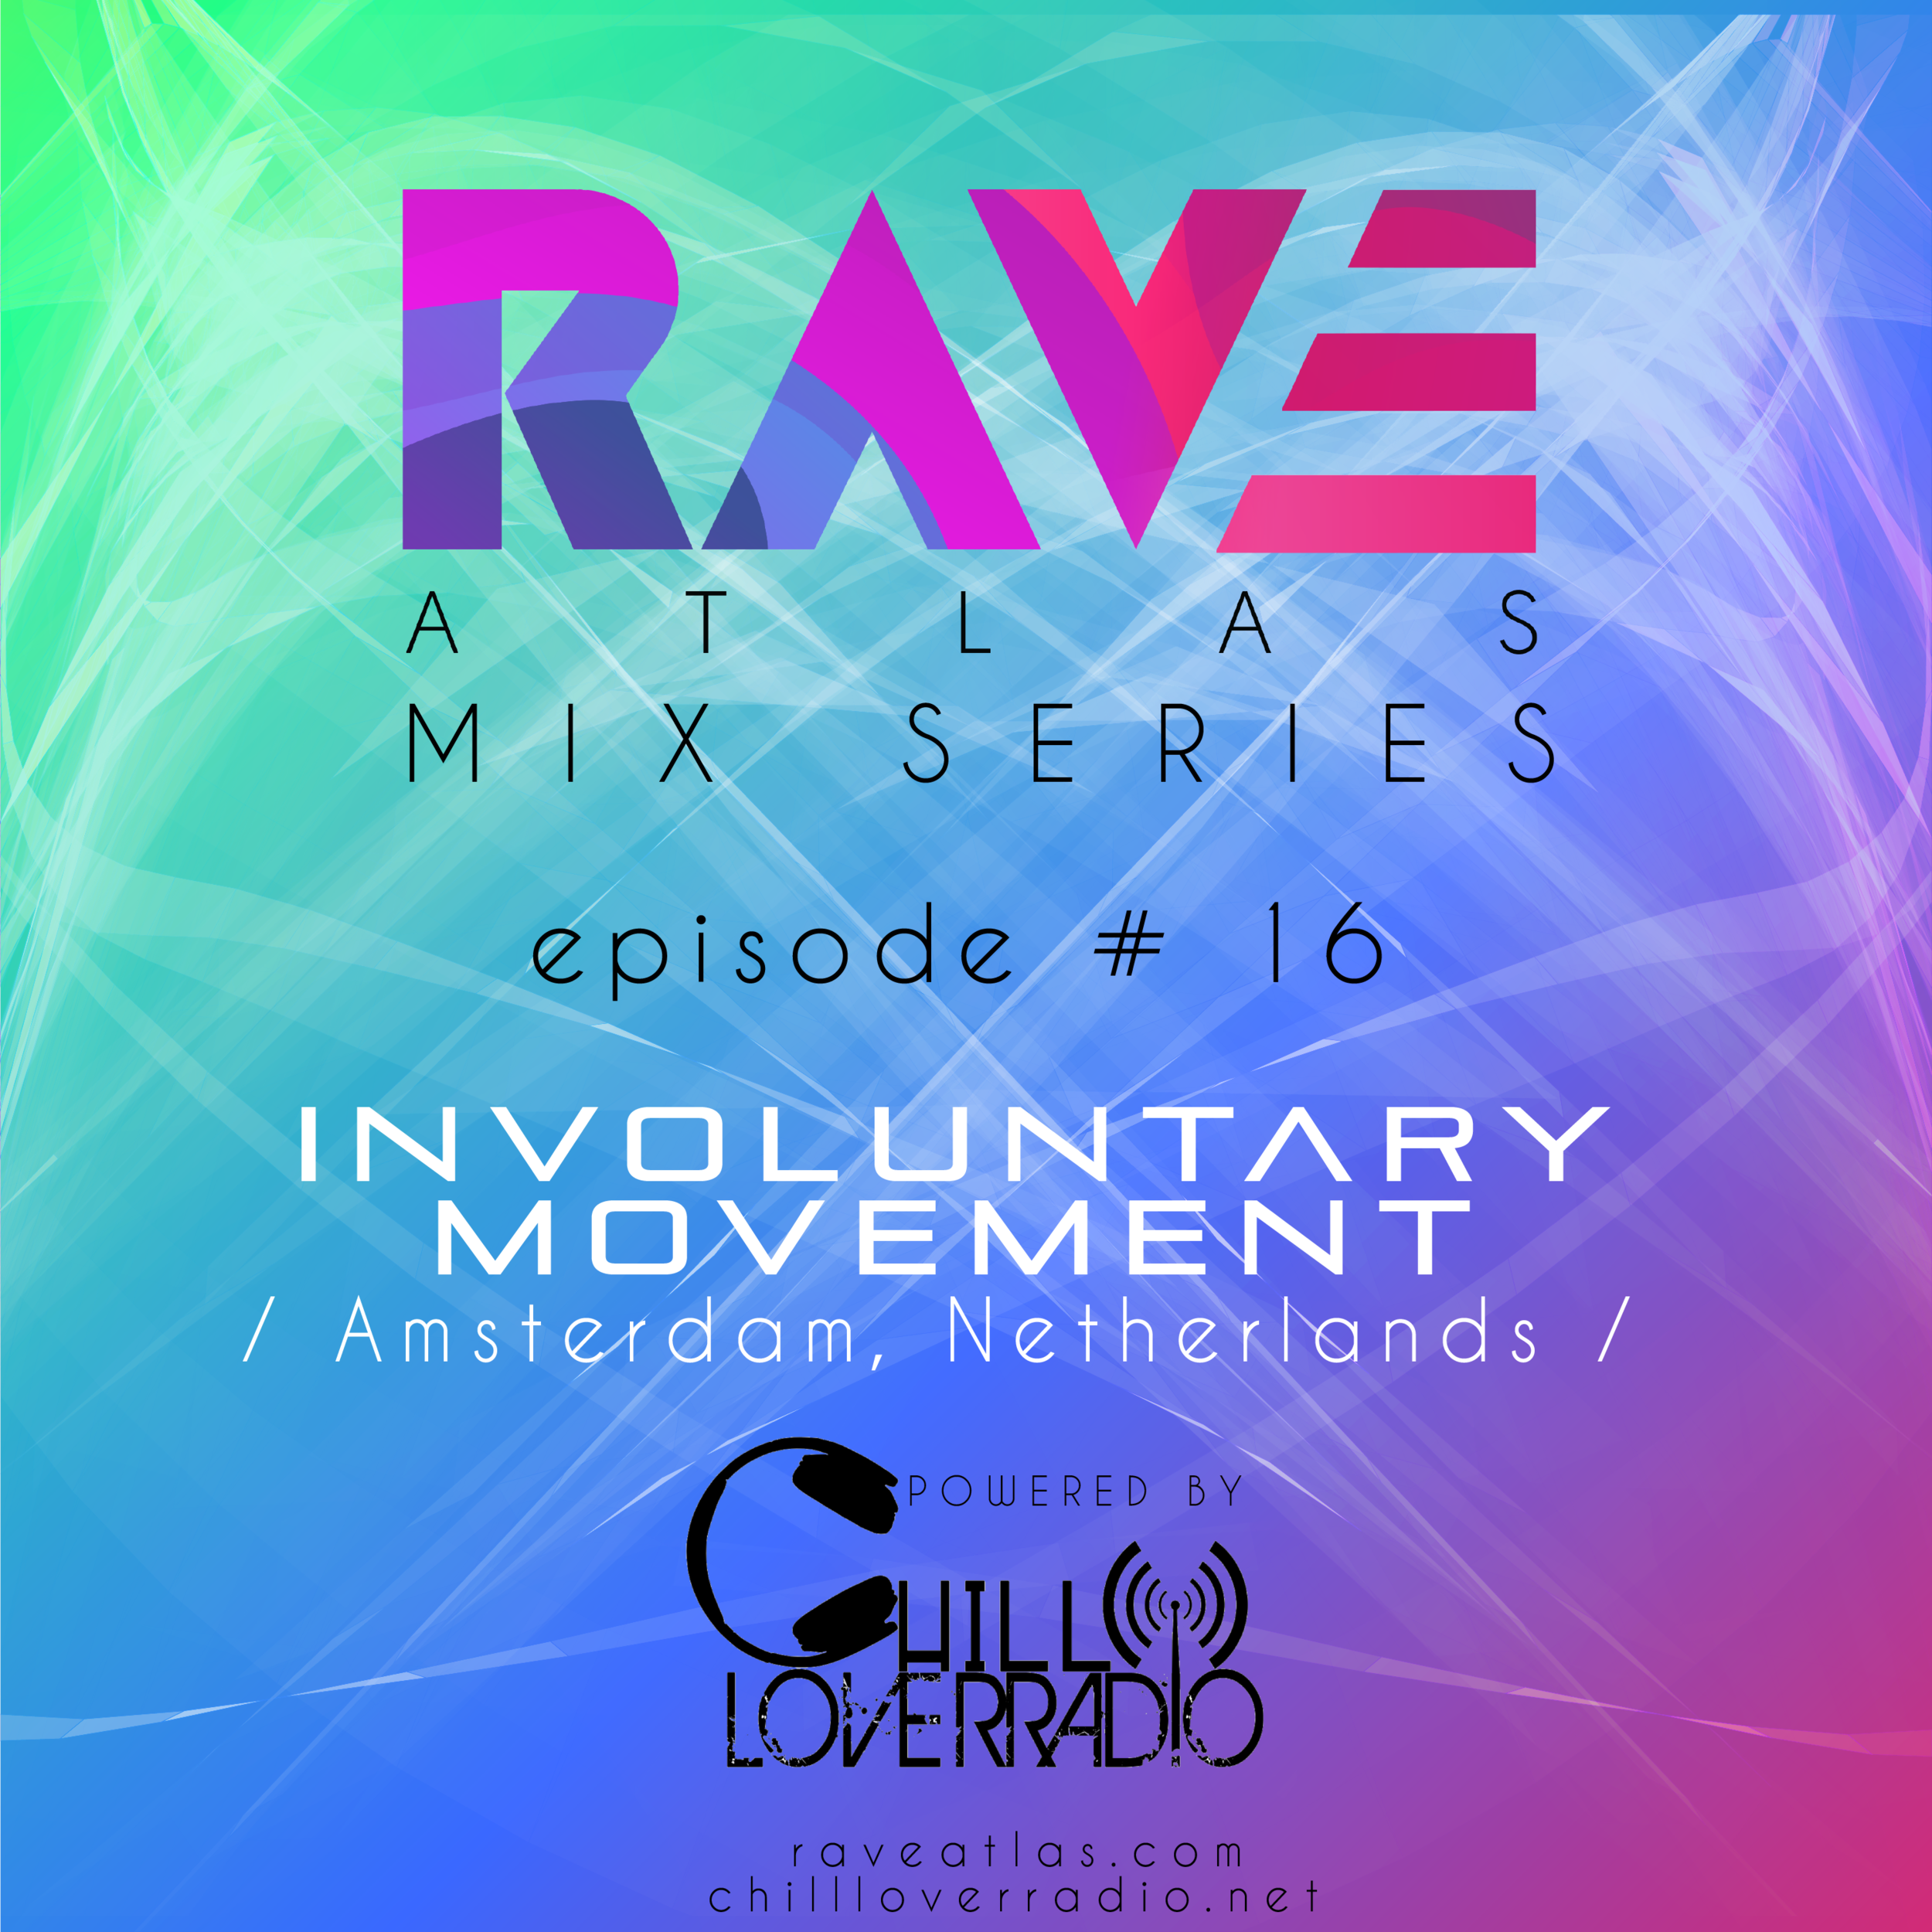 Rave Atlas Mix Series EP 016 - Involuntary Movement - Amsterdam, Netherlands